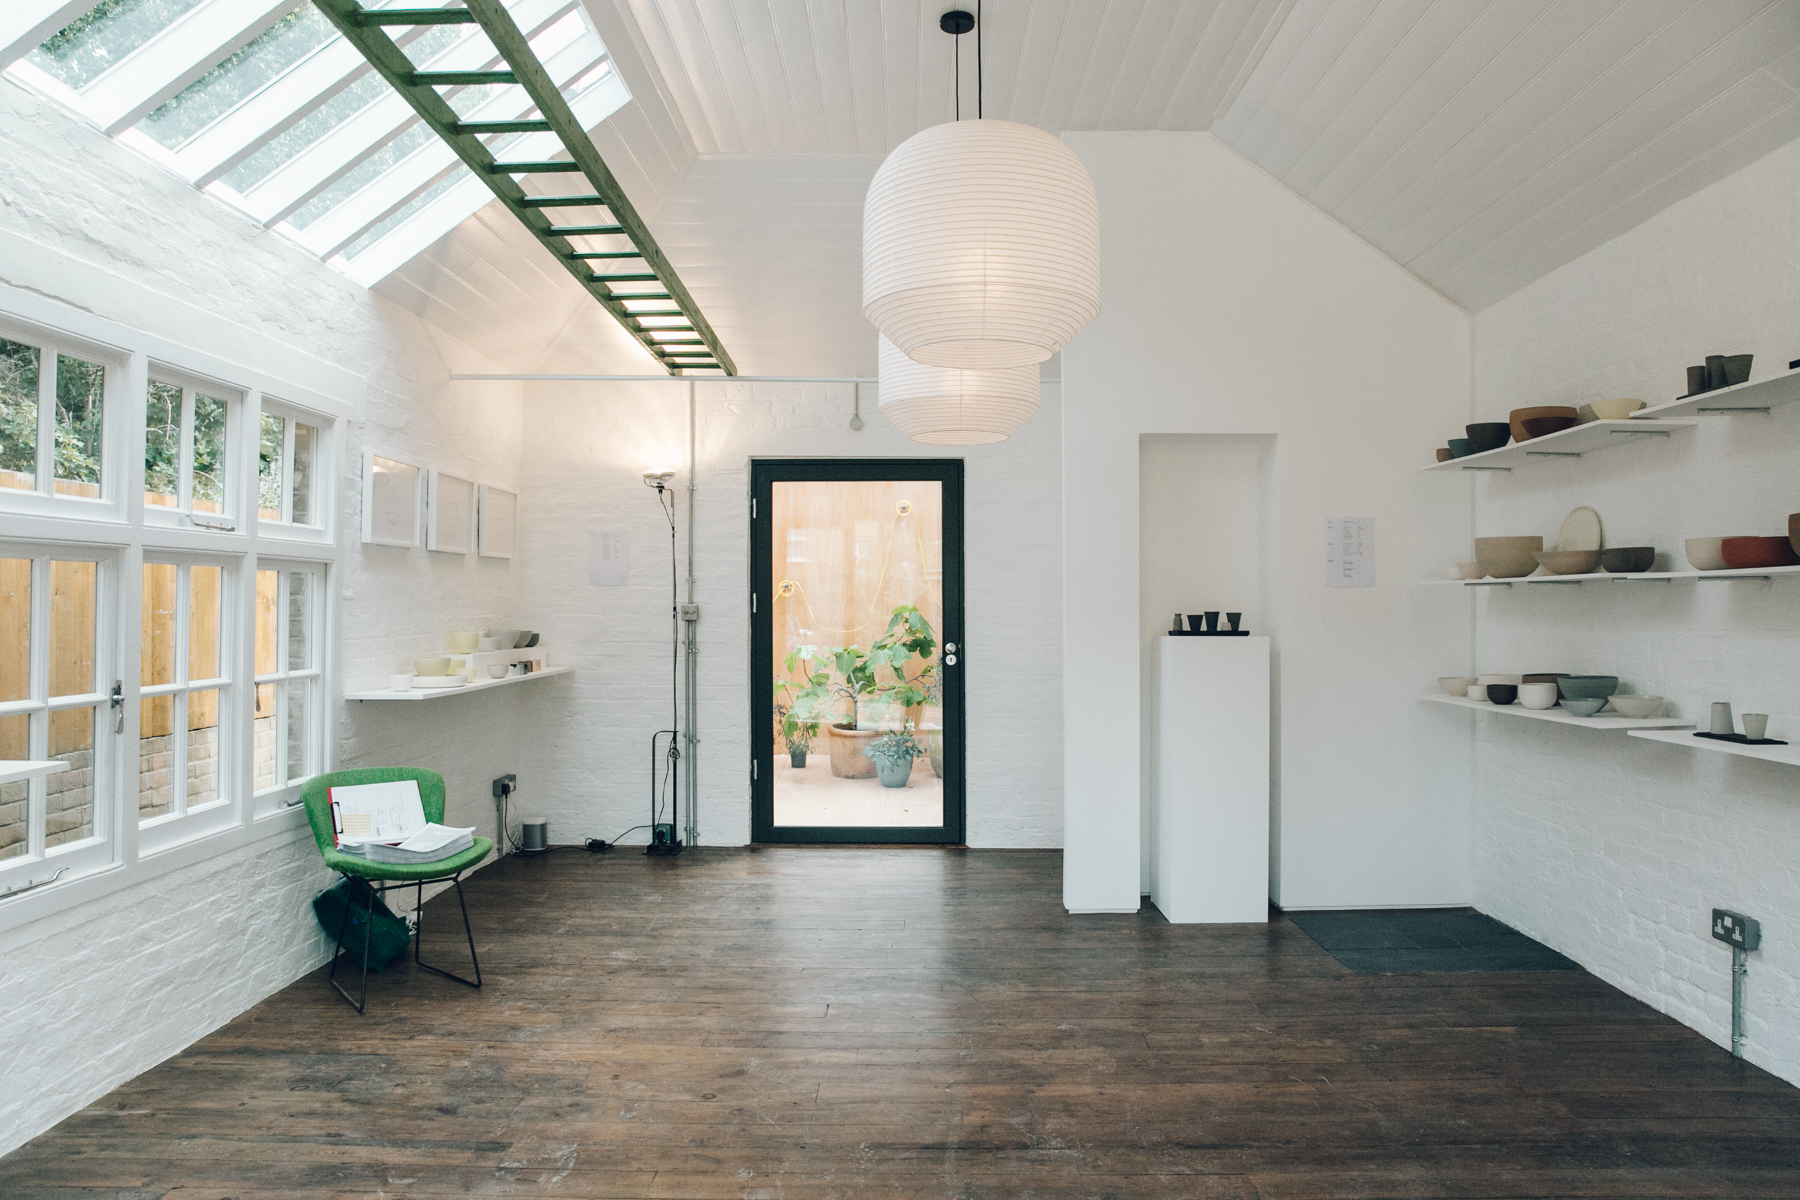 Light and airy gallery space in a converted garage.